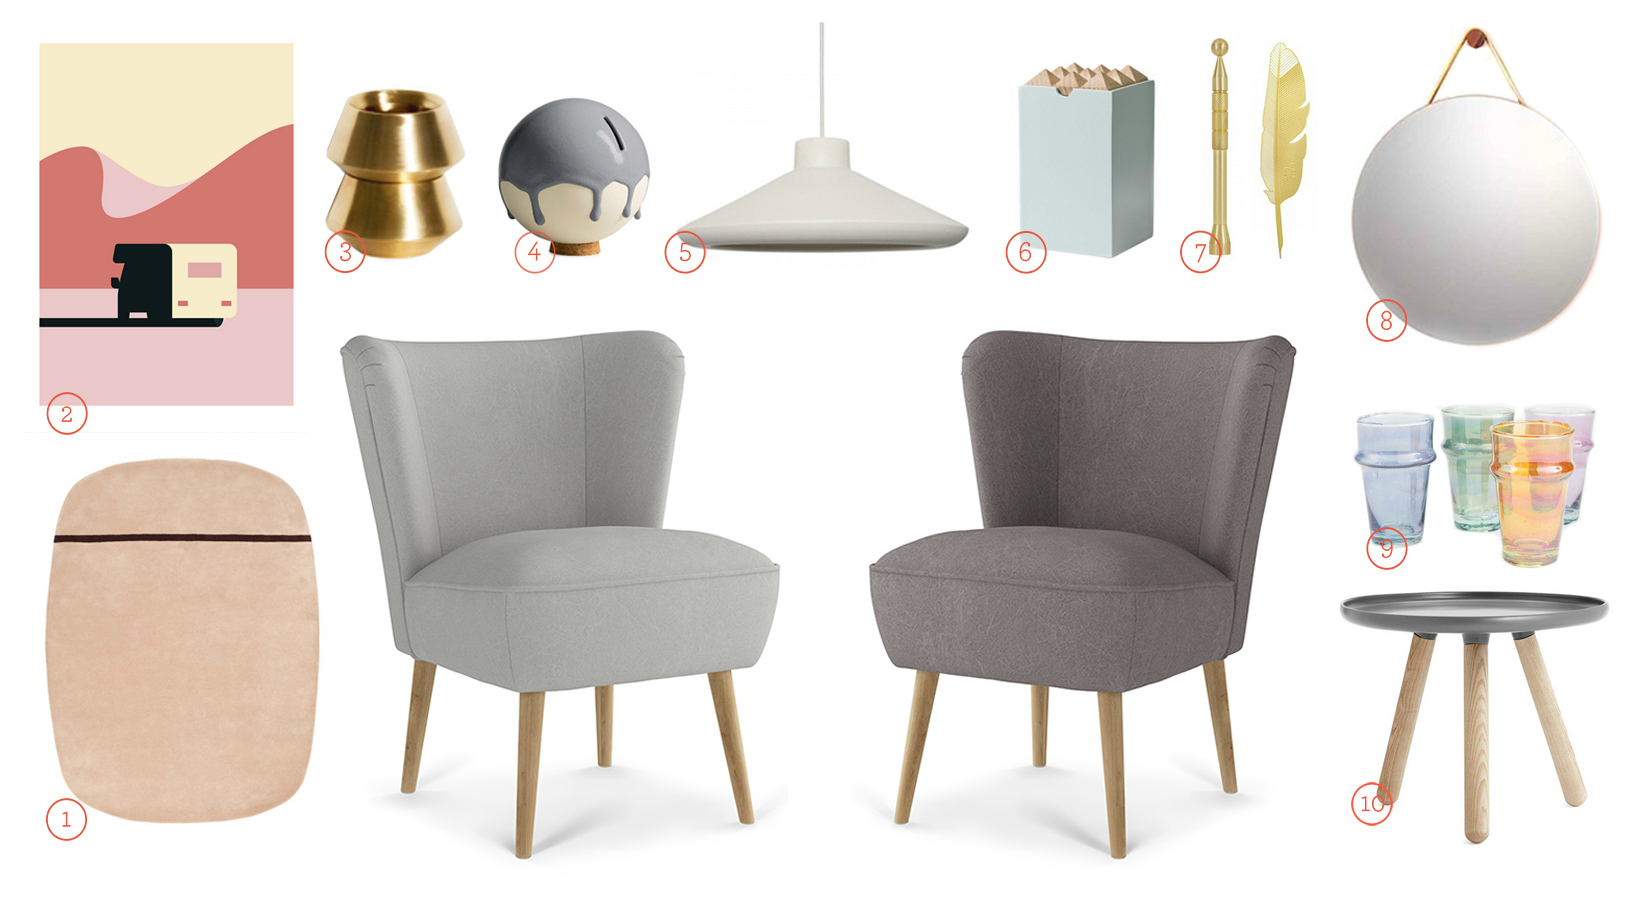 Get The Look - Emilia chairs